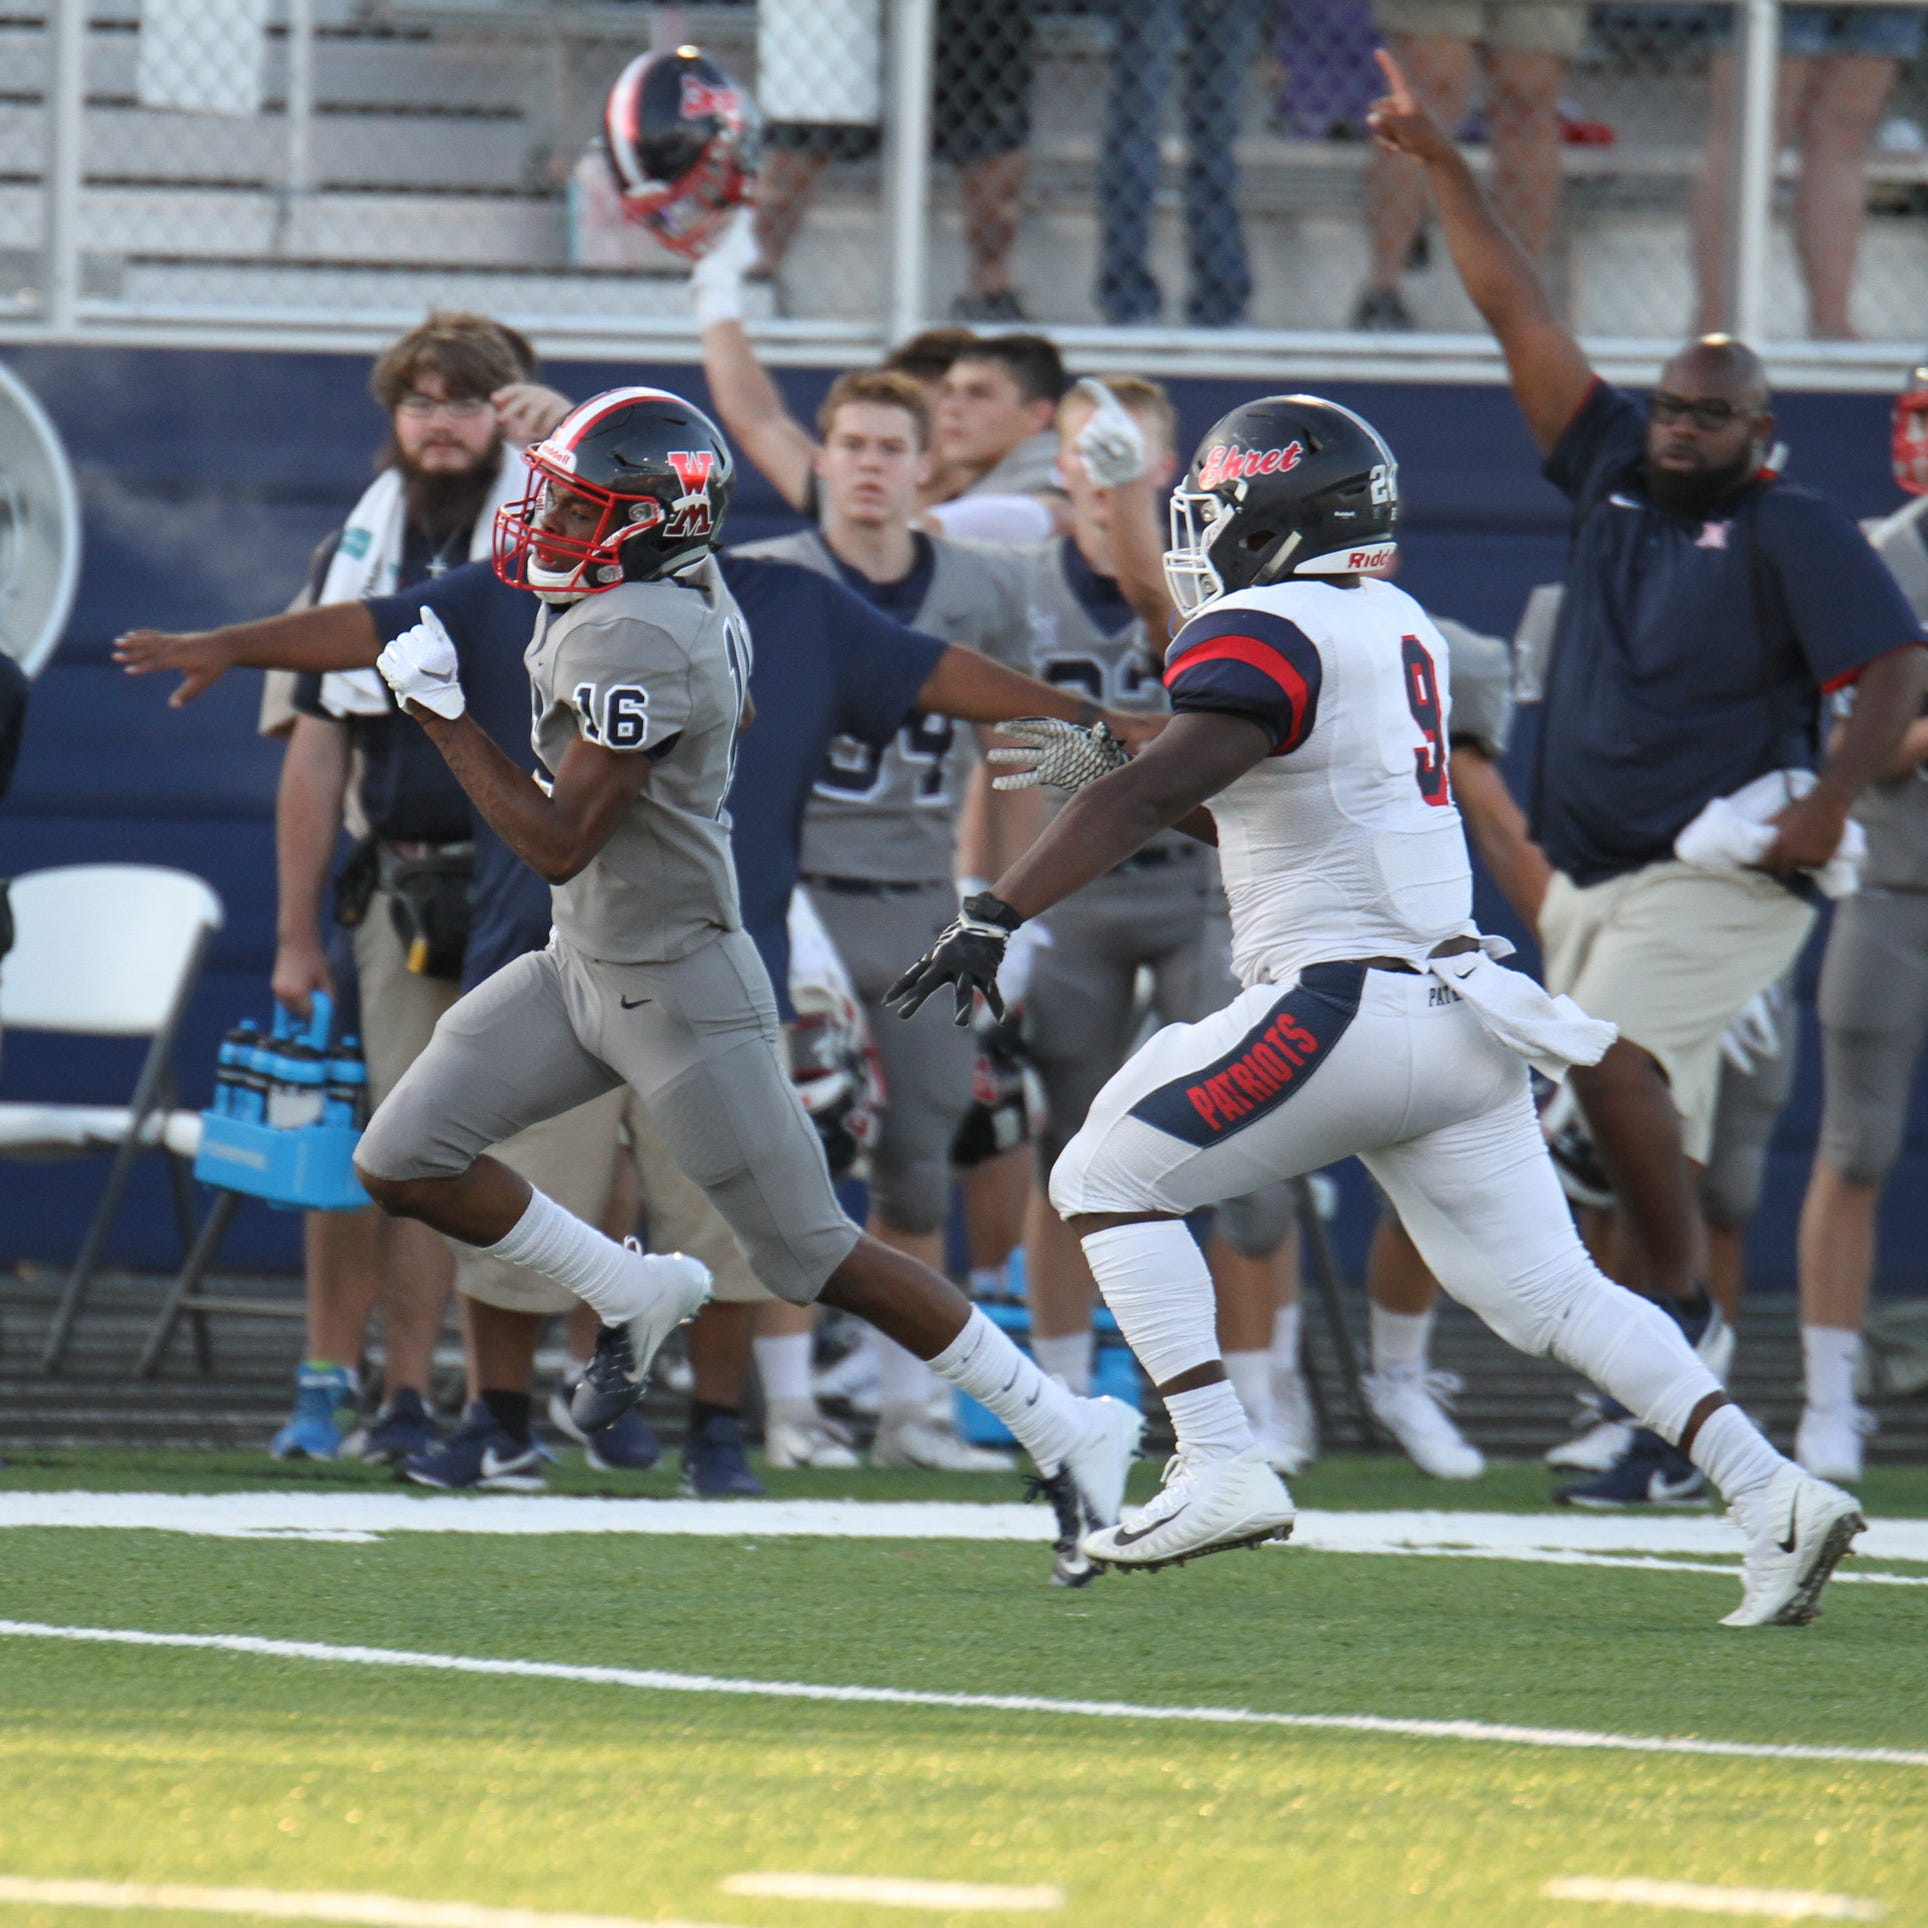 West Monroe cashes in mistakes to down John Ehret in opener